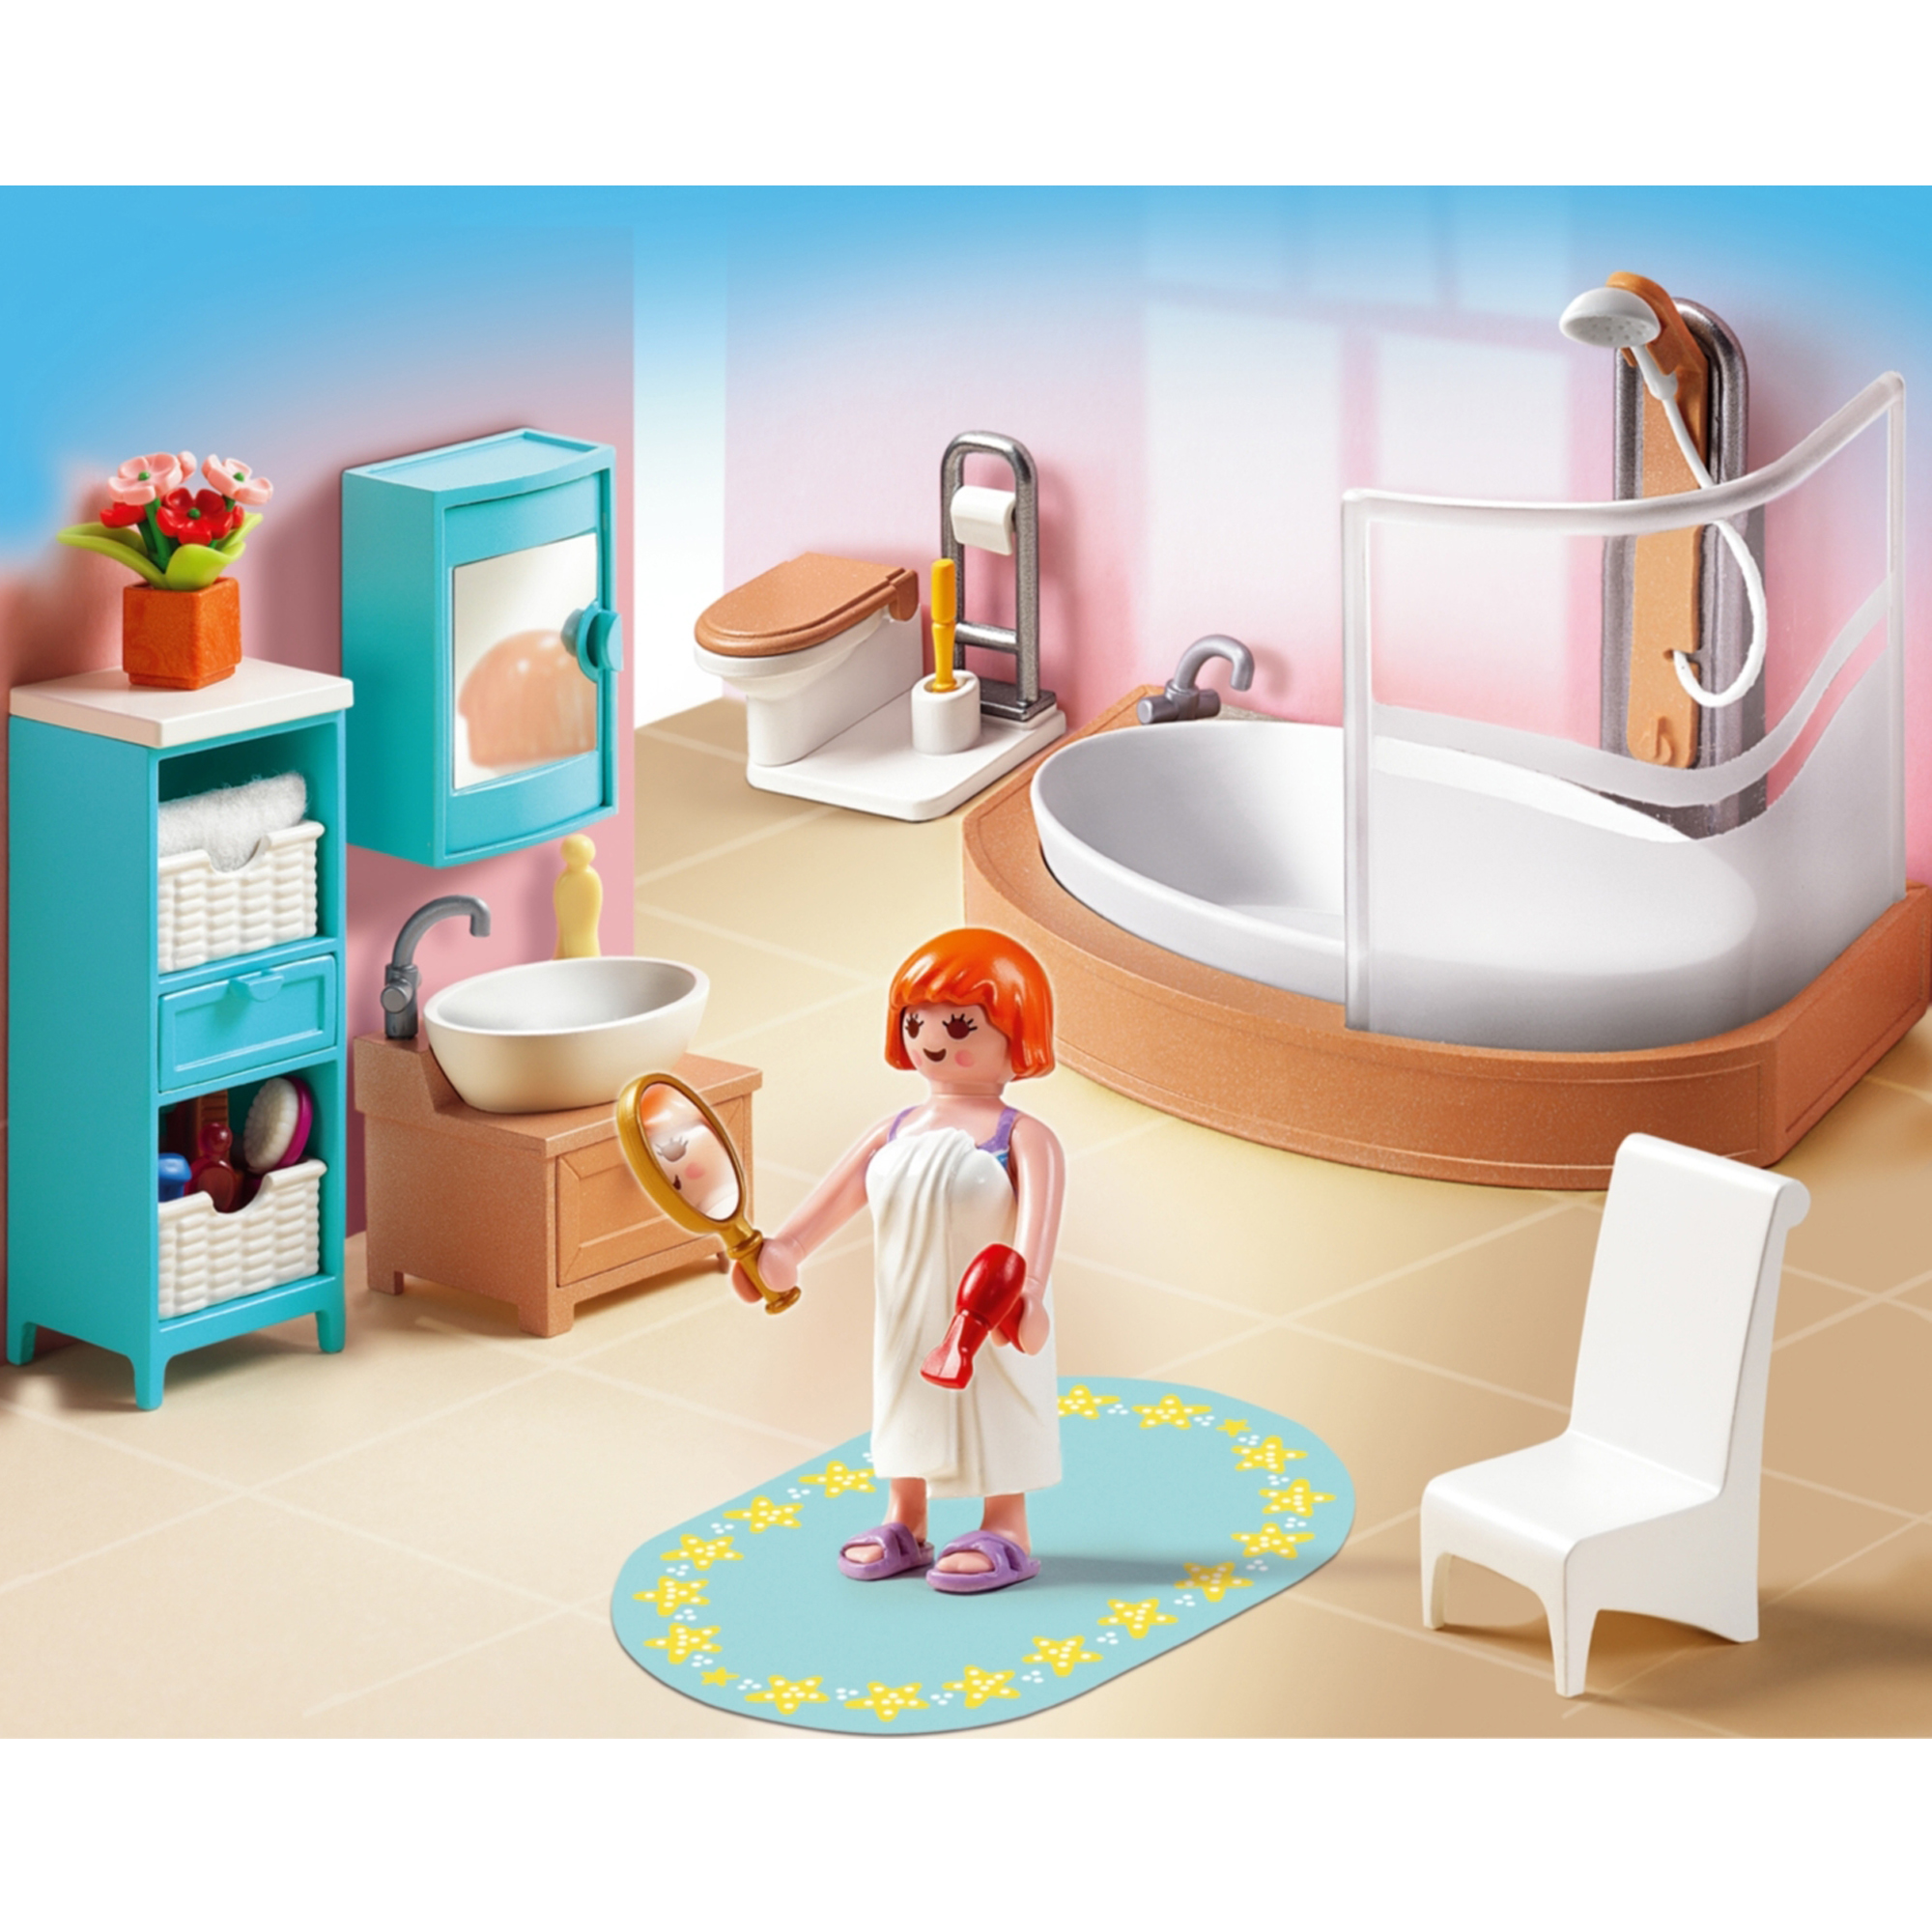 Playmobil Esszimmer 5335 Playmobil 5302 Grande Mansion From The Playmobil